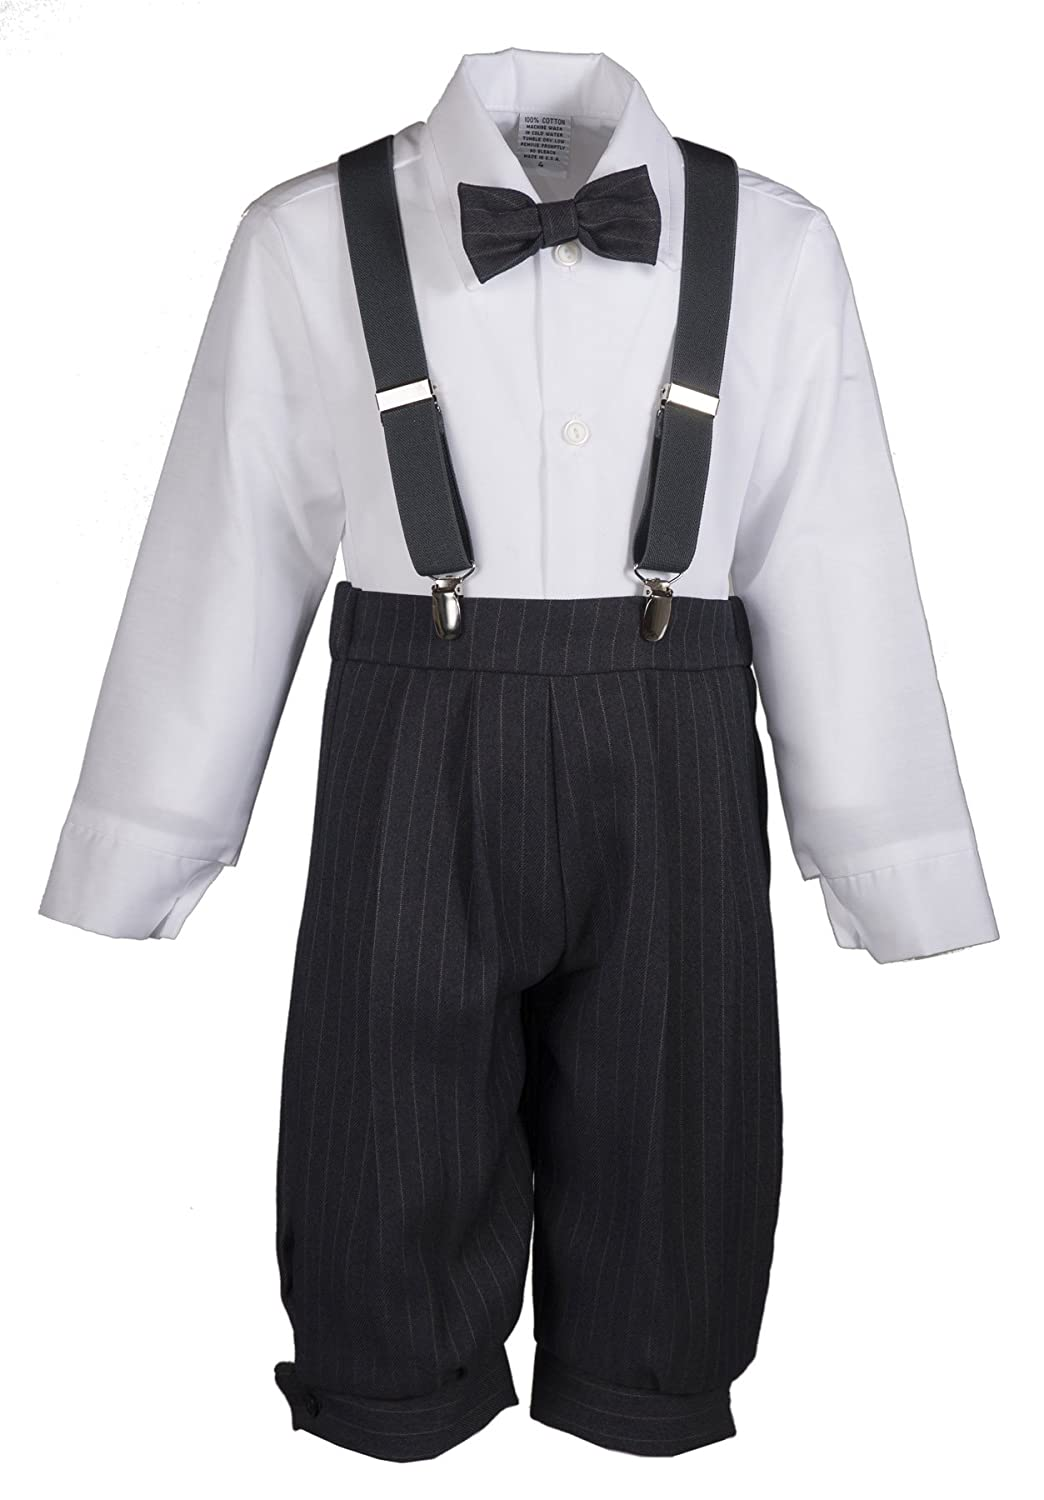 2ca01d0d7 Amazon.com: Boys Grey Pinstripe Knicker Set with Suspenders in Baby,  Toddler & Boys Sizes: Clothing